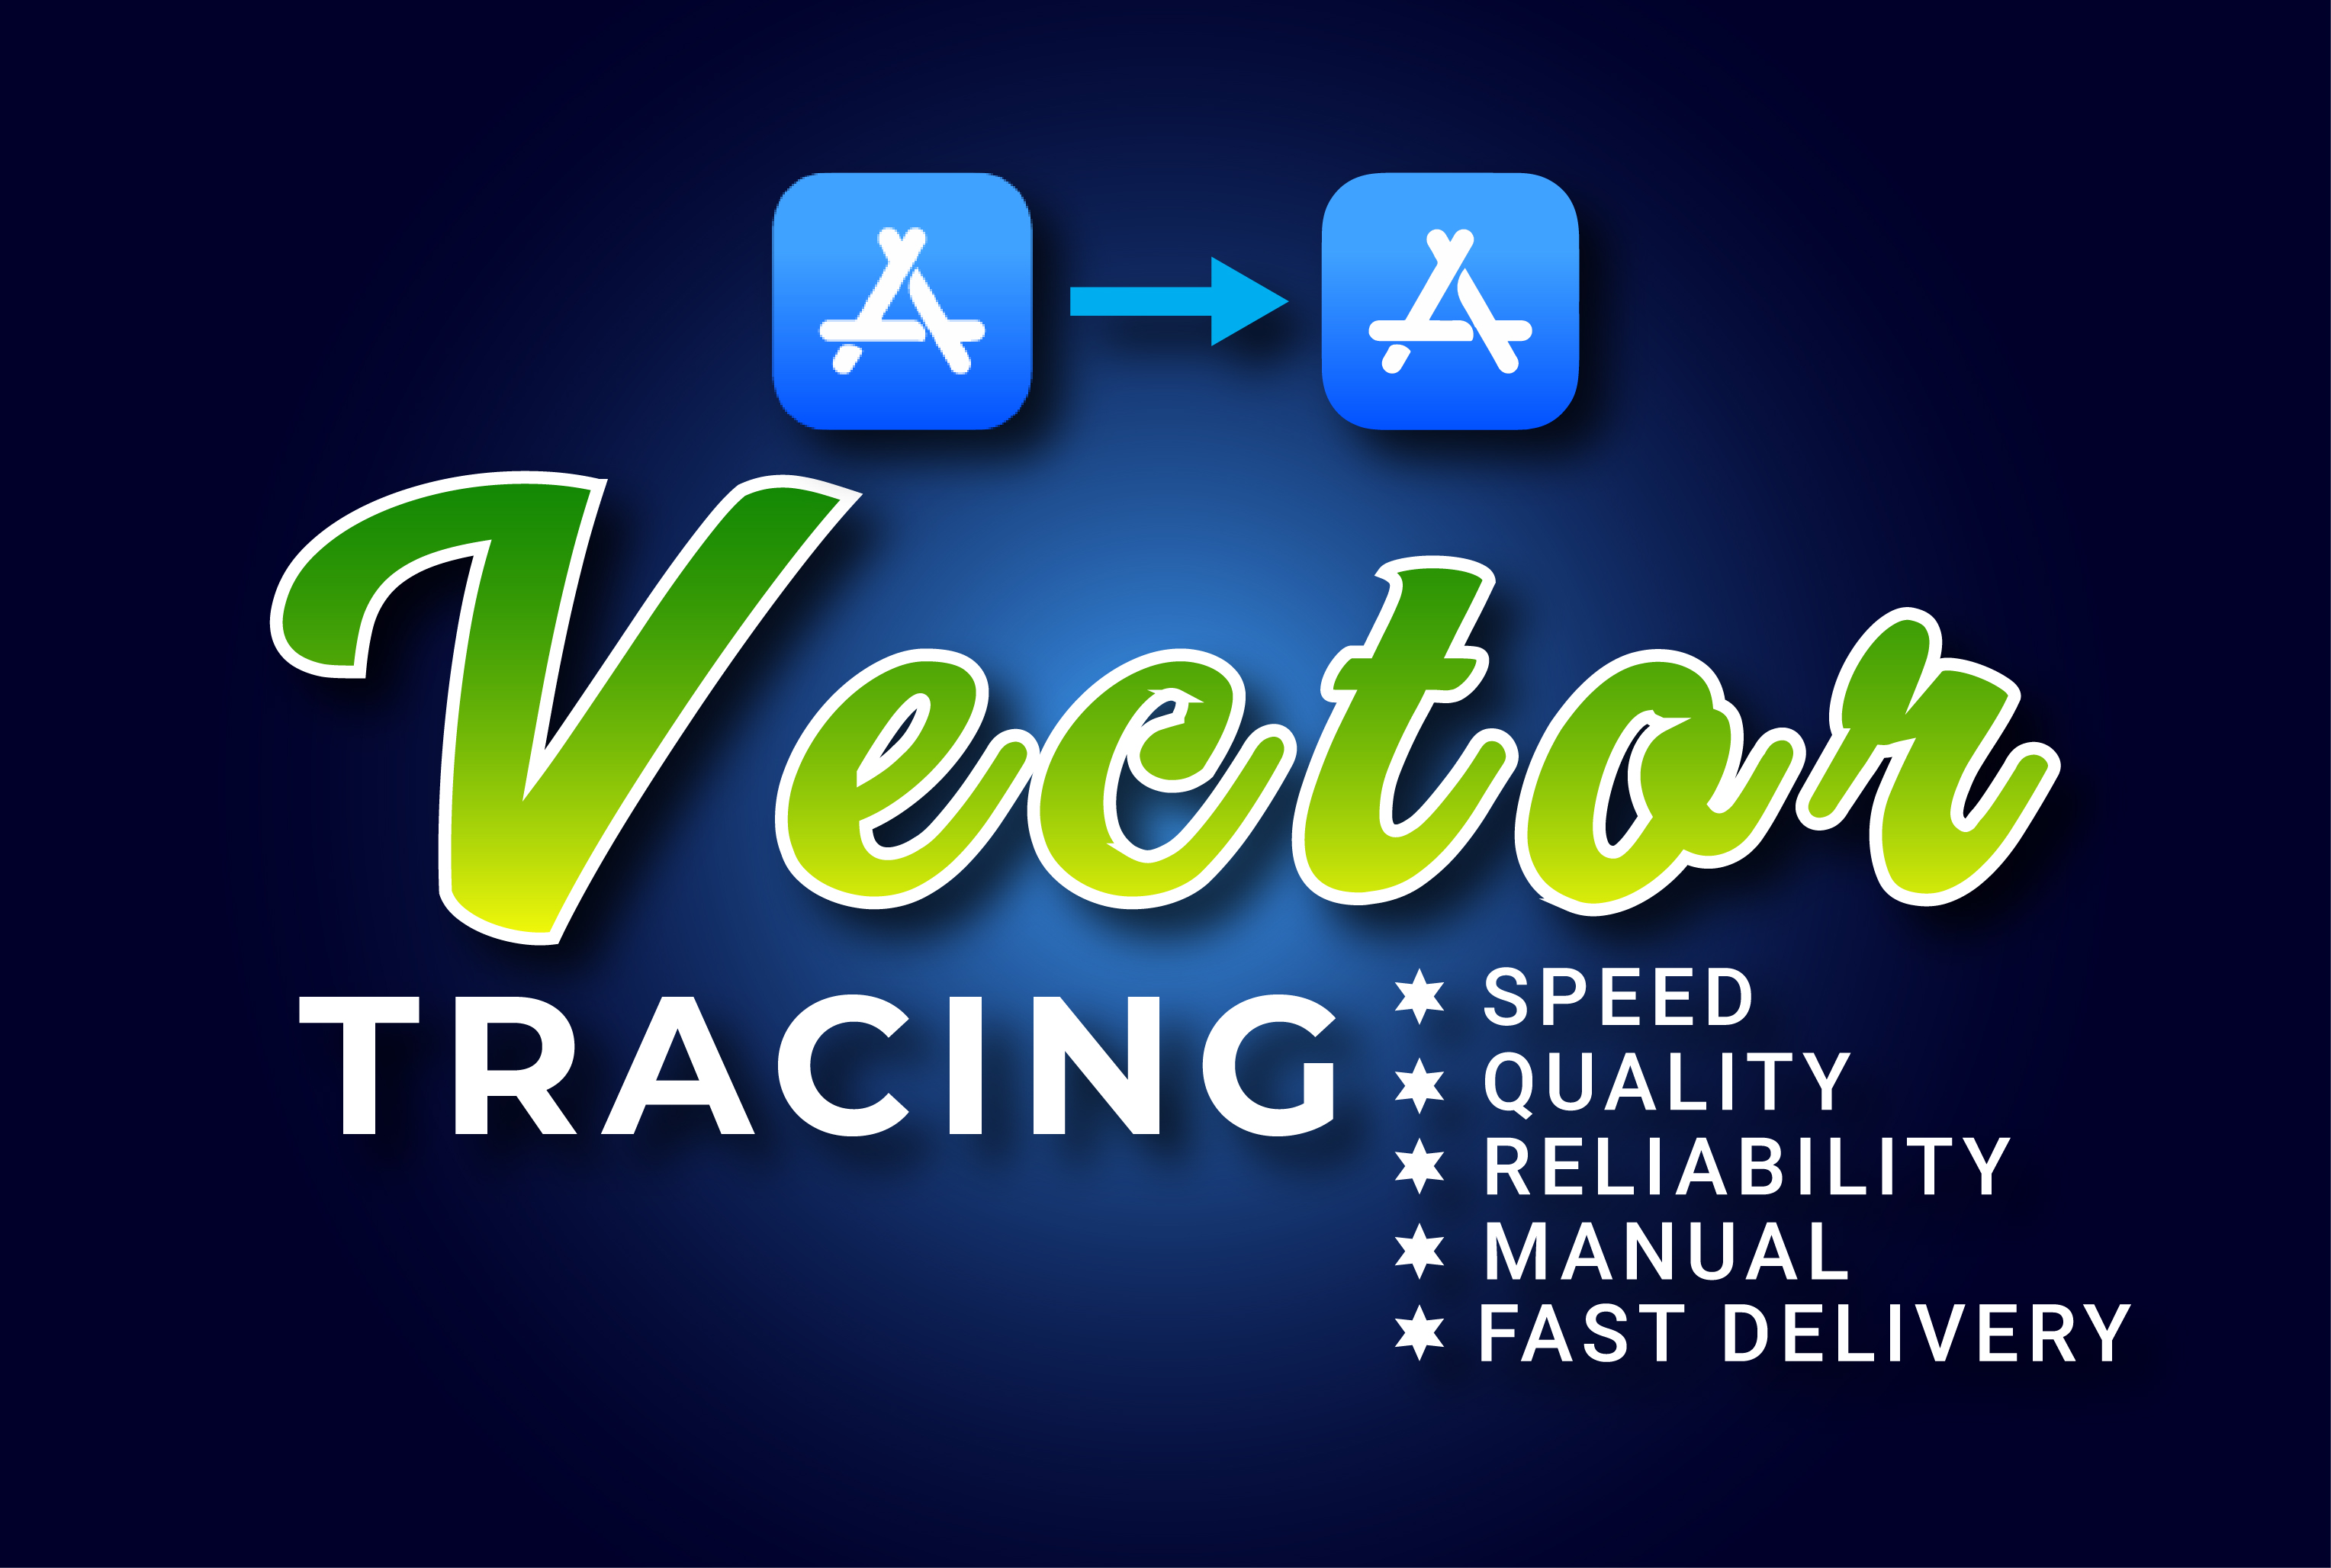 I will vectorize logos or images into vector